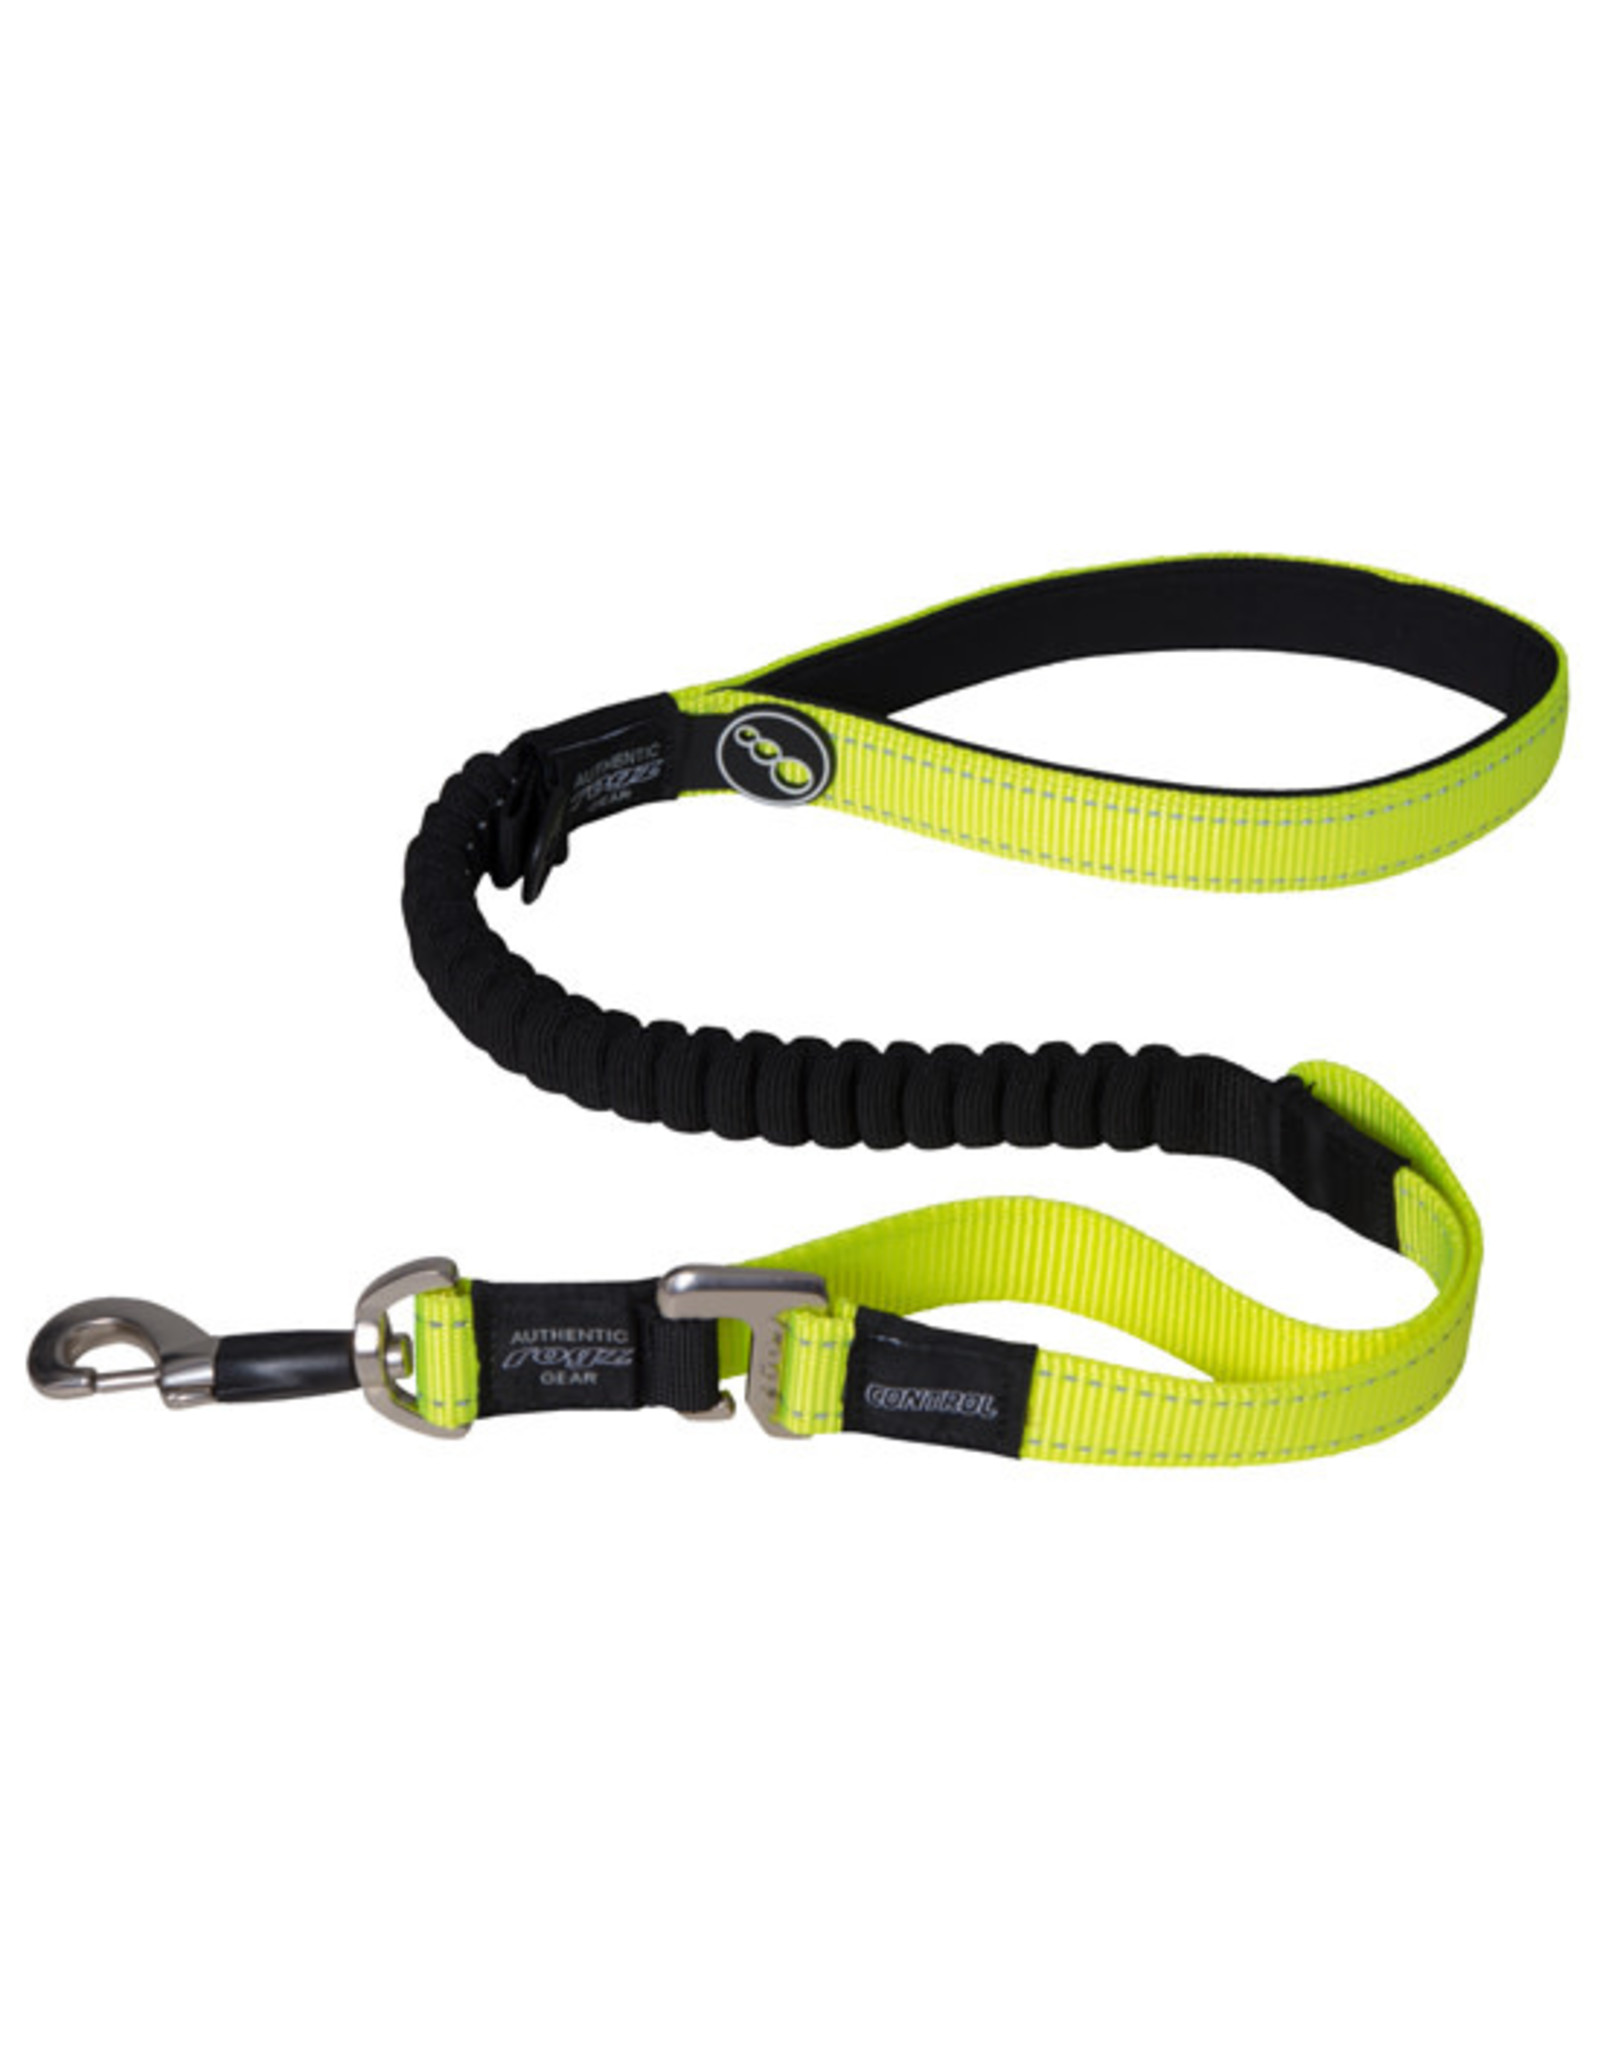 Snake Lead Control Md Ye 4.6ft